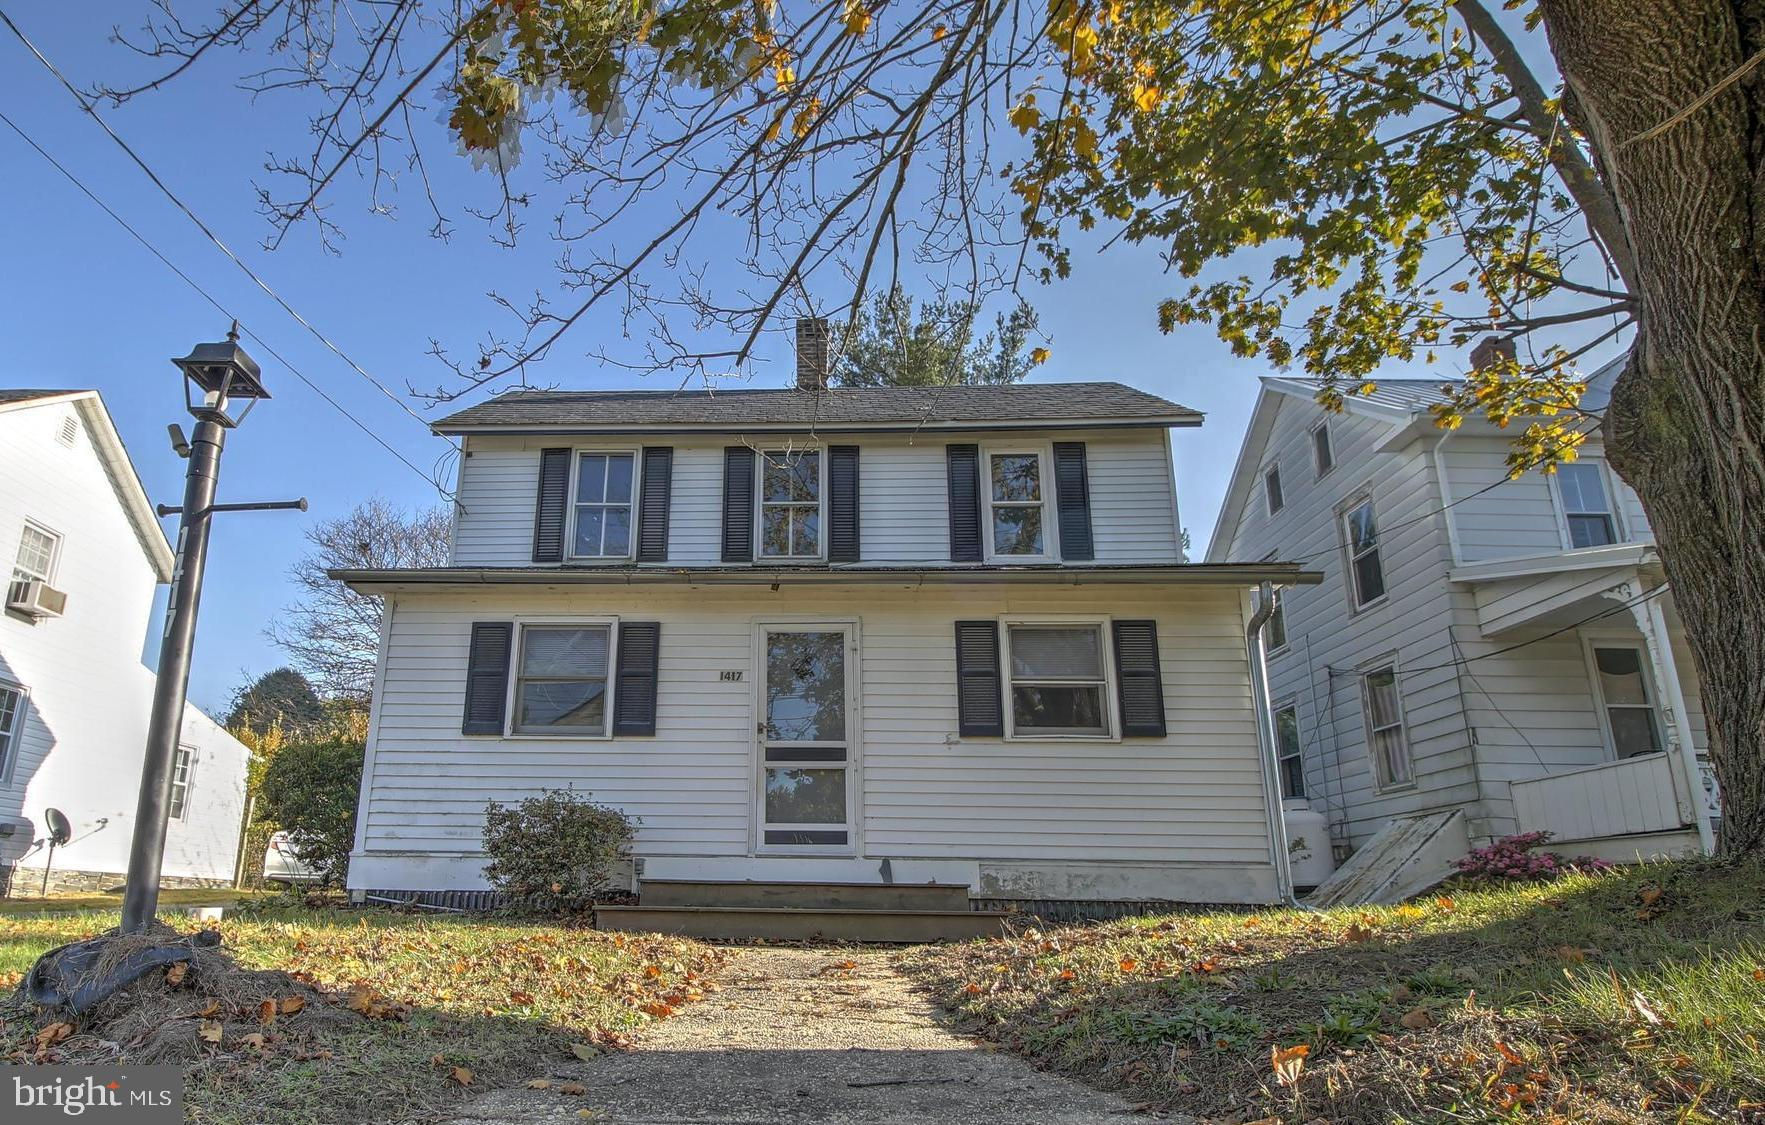 1417 MAIN STREET, WHITEFORD, MD 21160